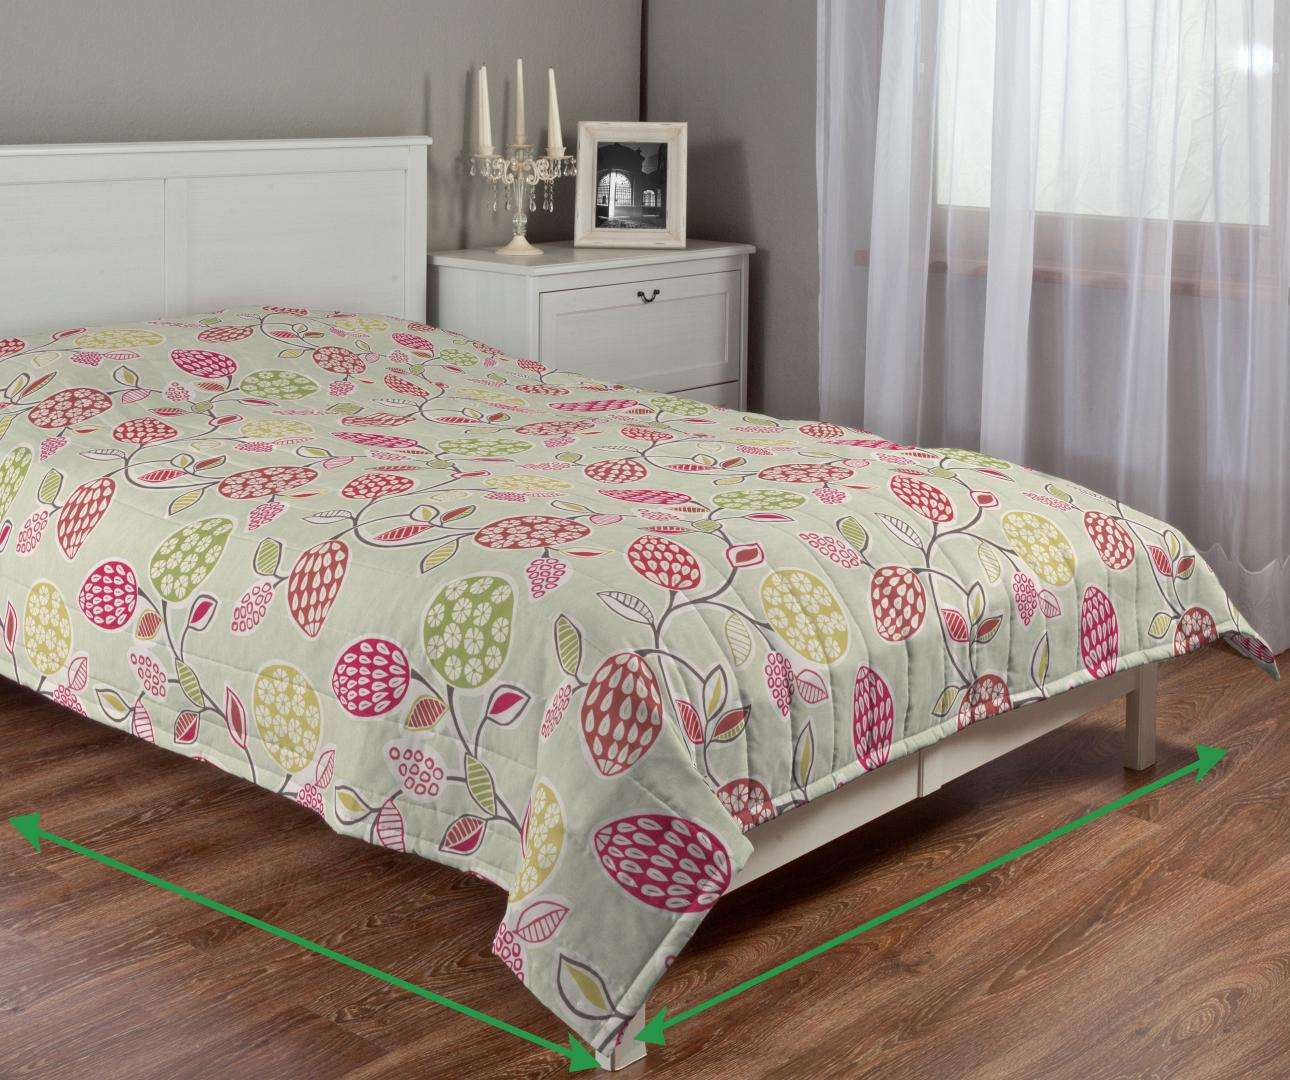 Quilted throw (vertical quilt pattern) in collection Norge, fabric: 140-78